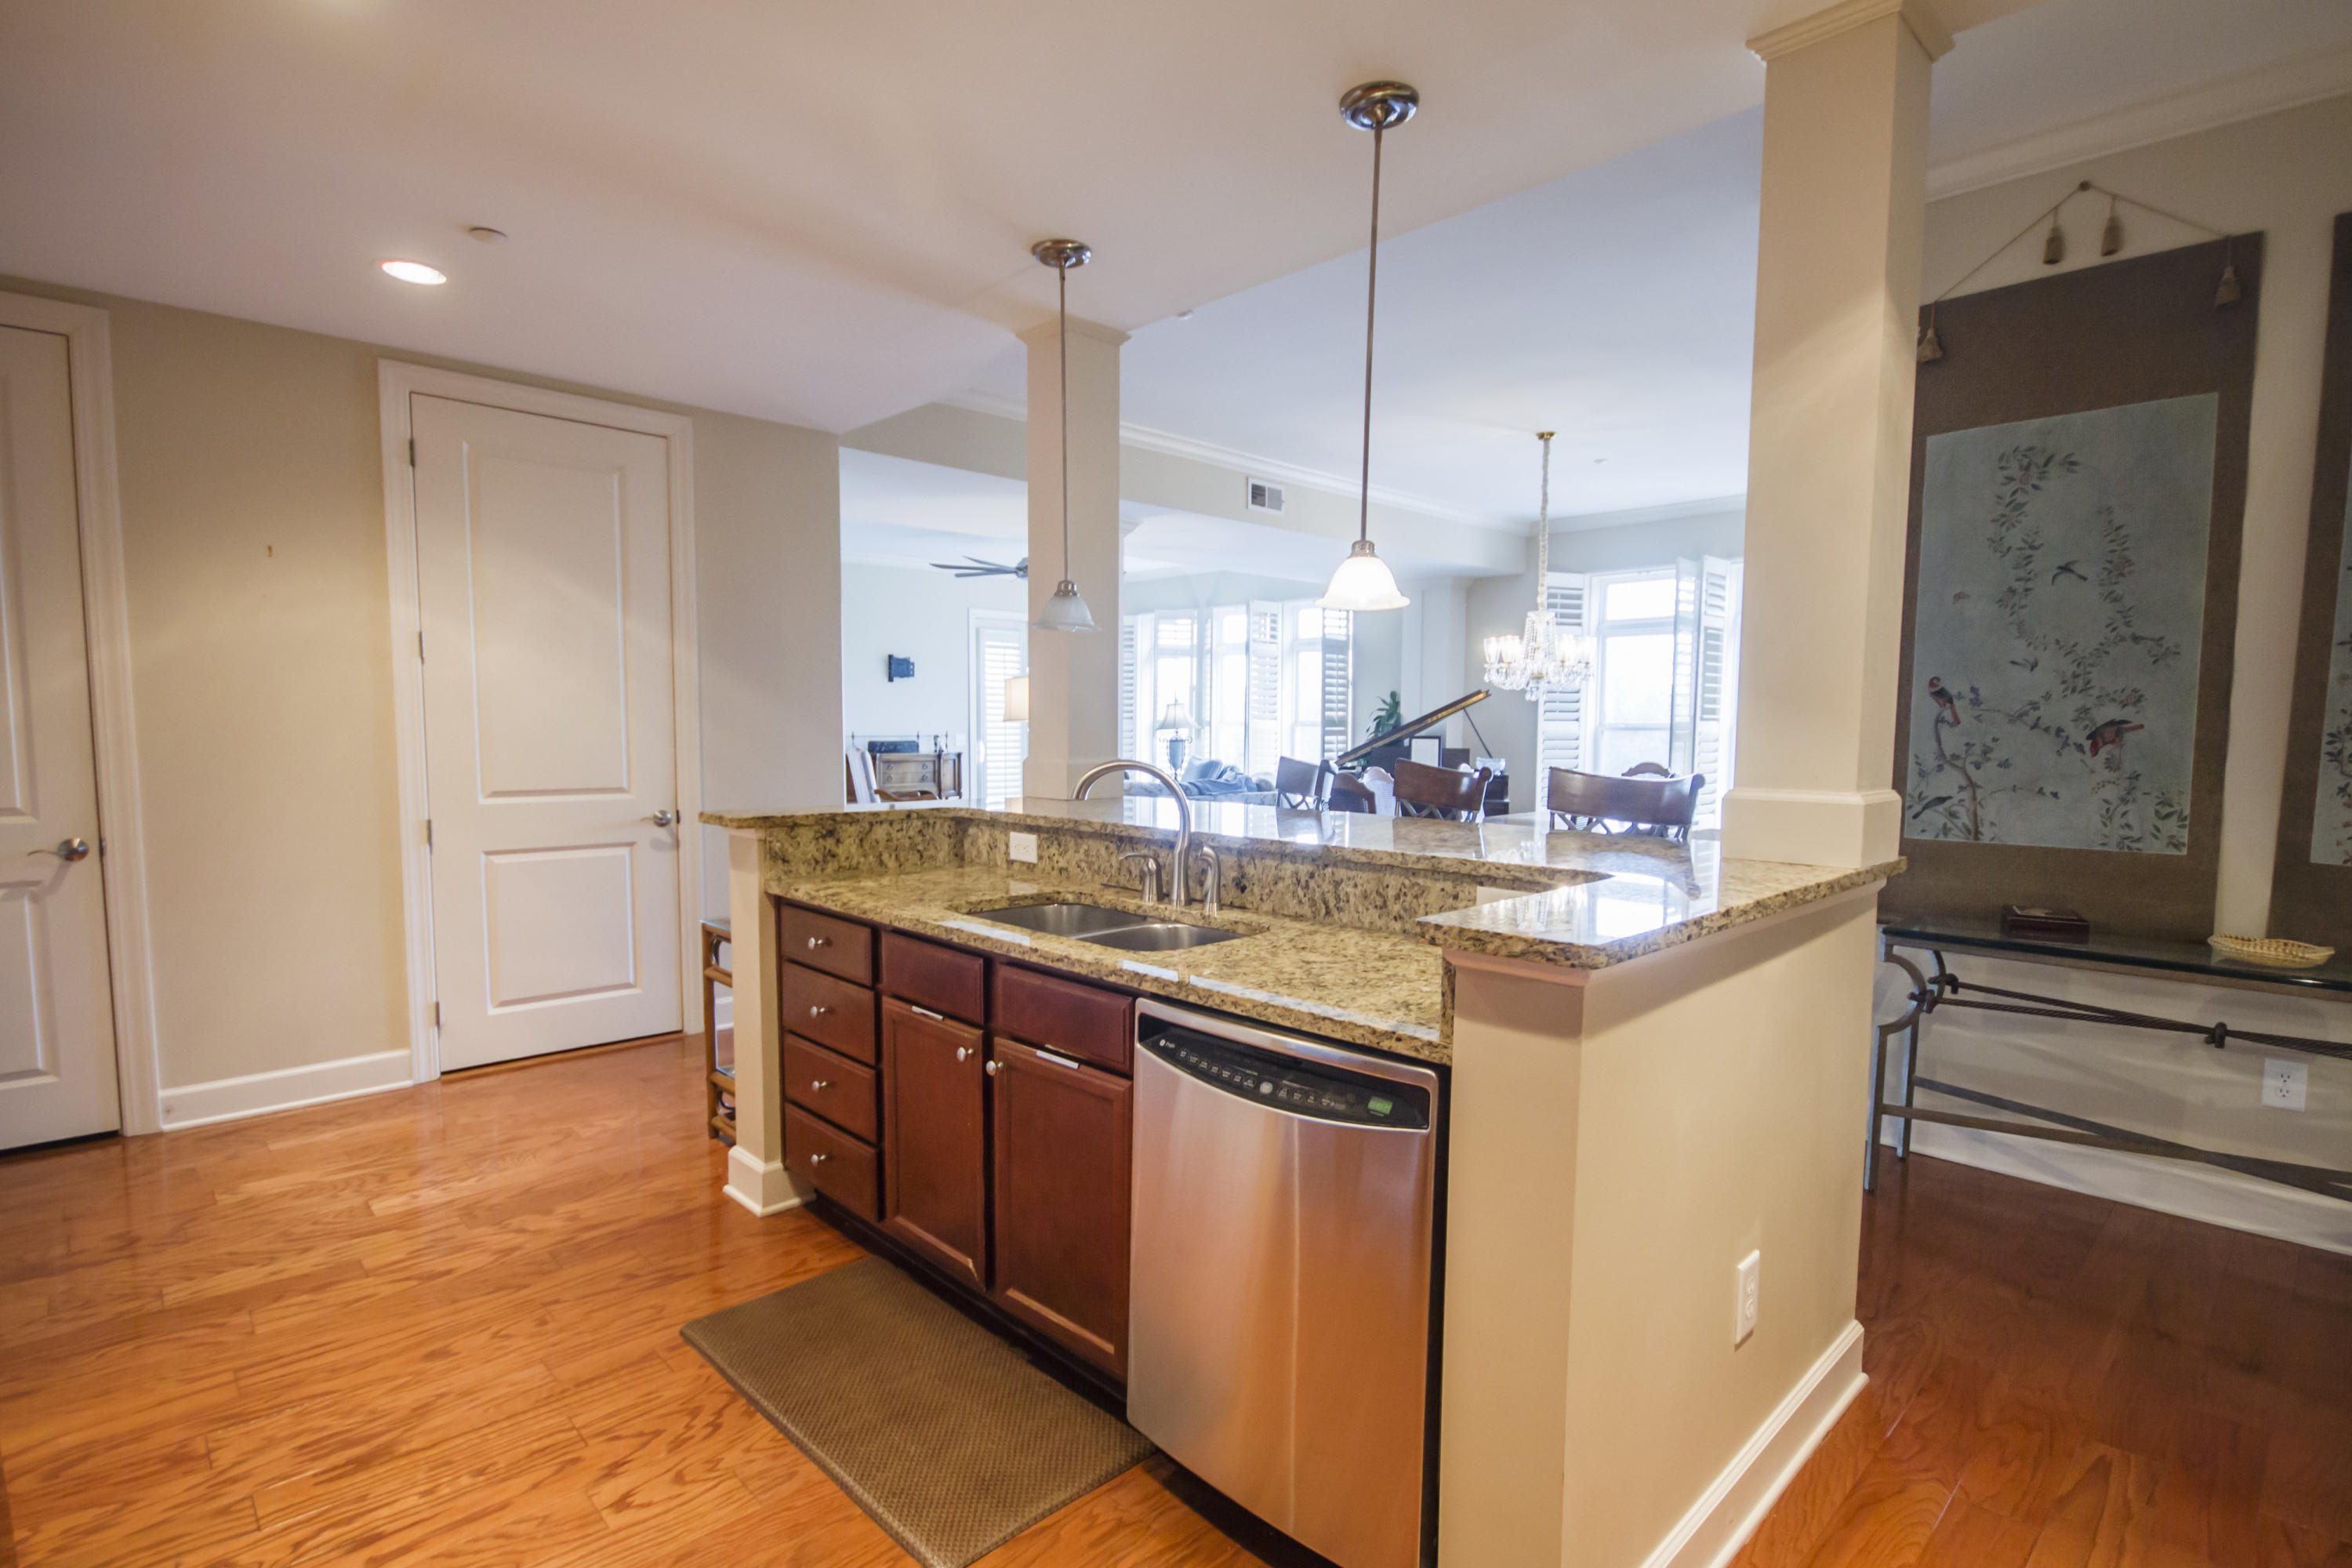 Pier View Homes For Sale - 125 Pier View, Charleston, SC - 14